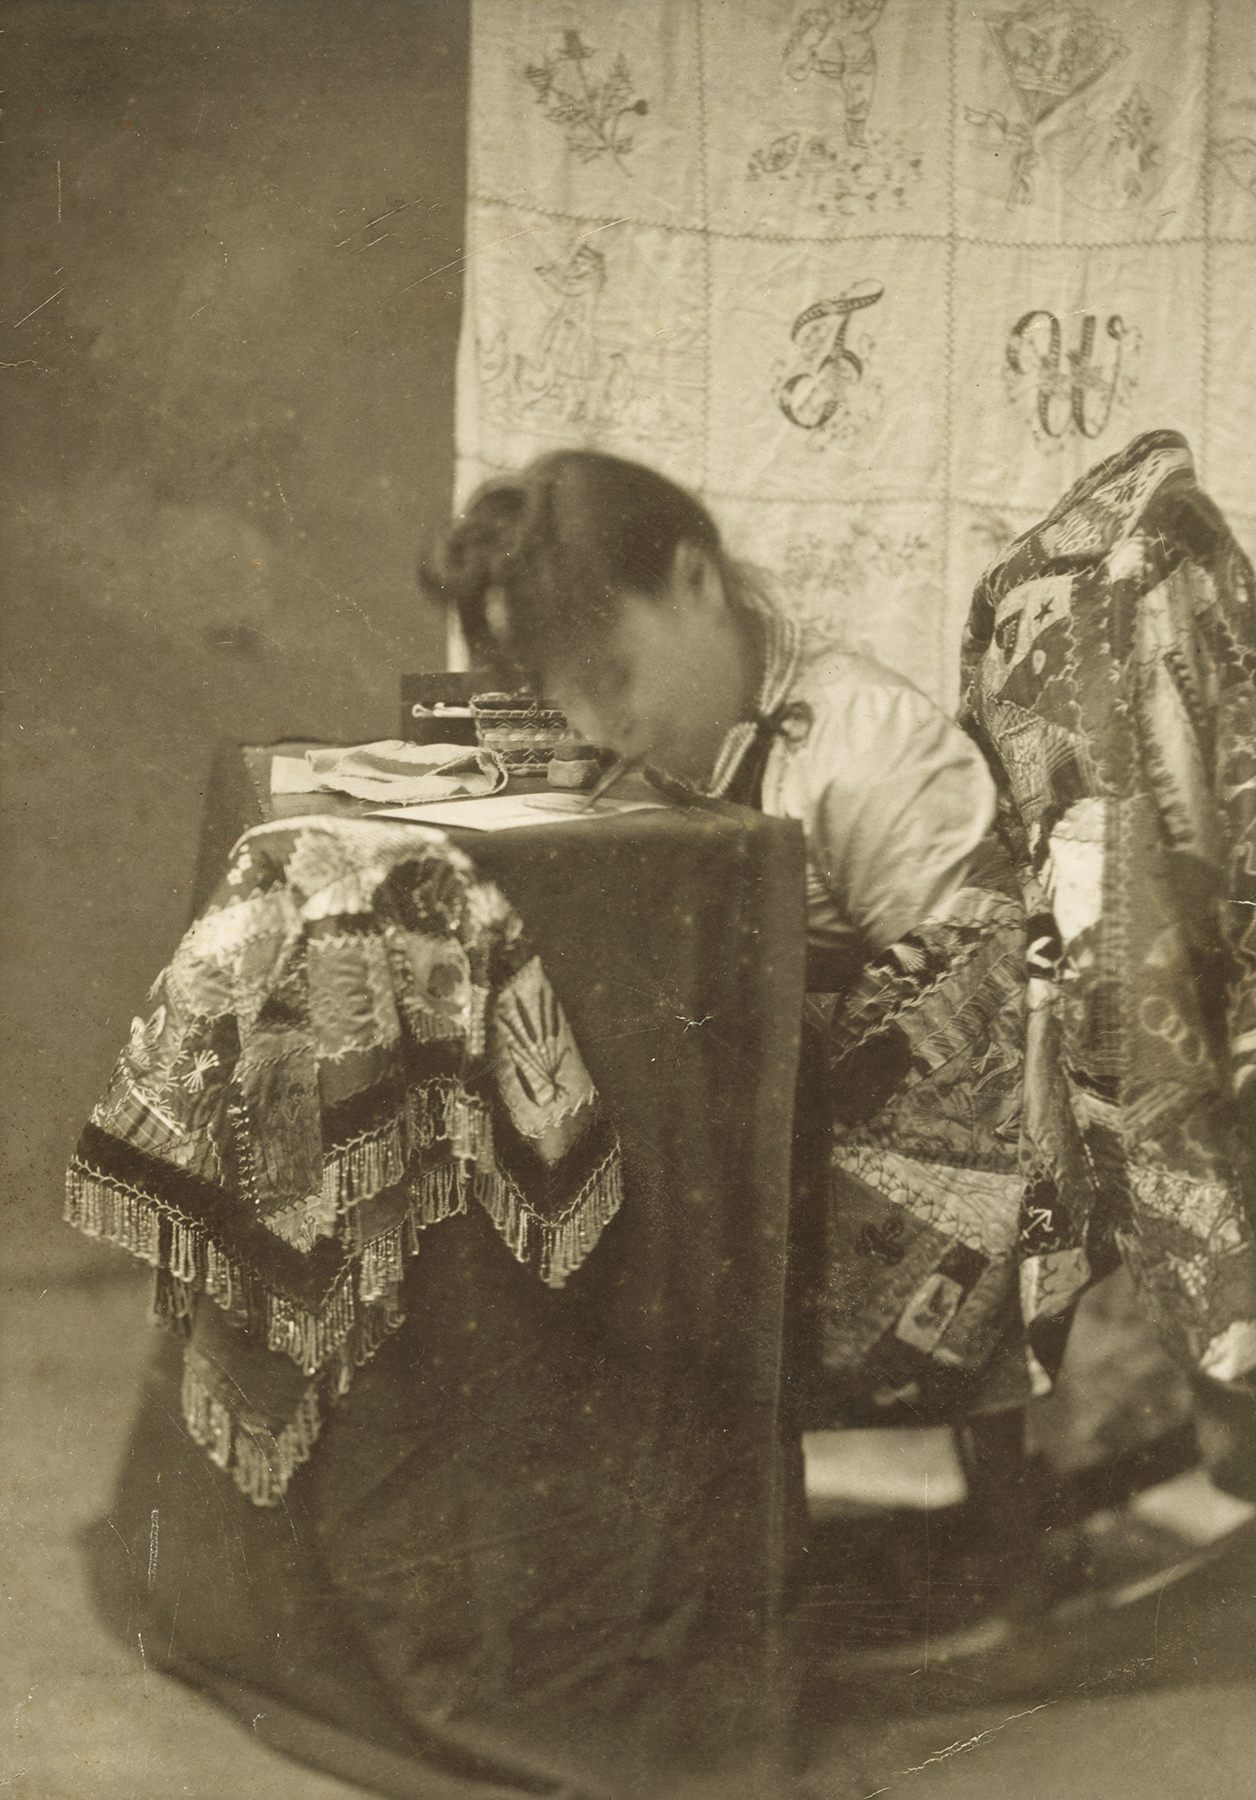 Fannie Tunnison sewing age 33 1900 - Jack Youngs collection